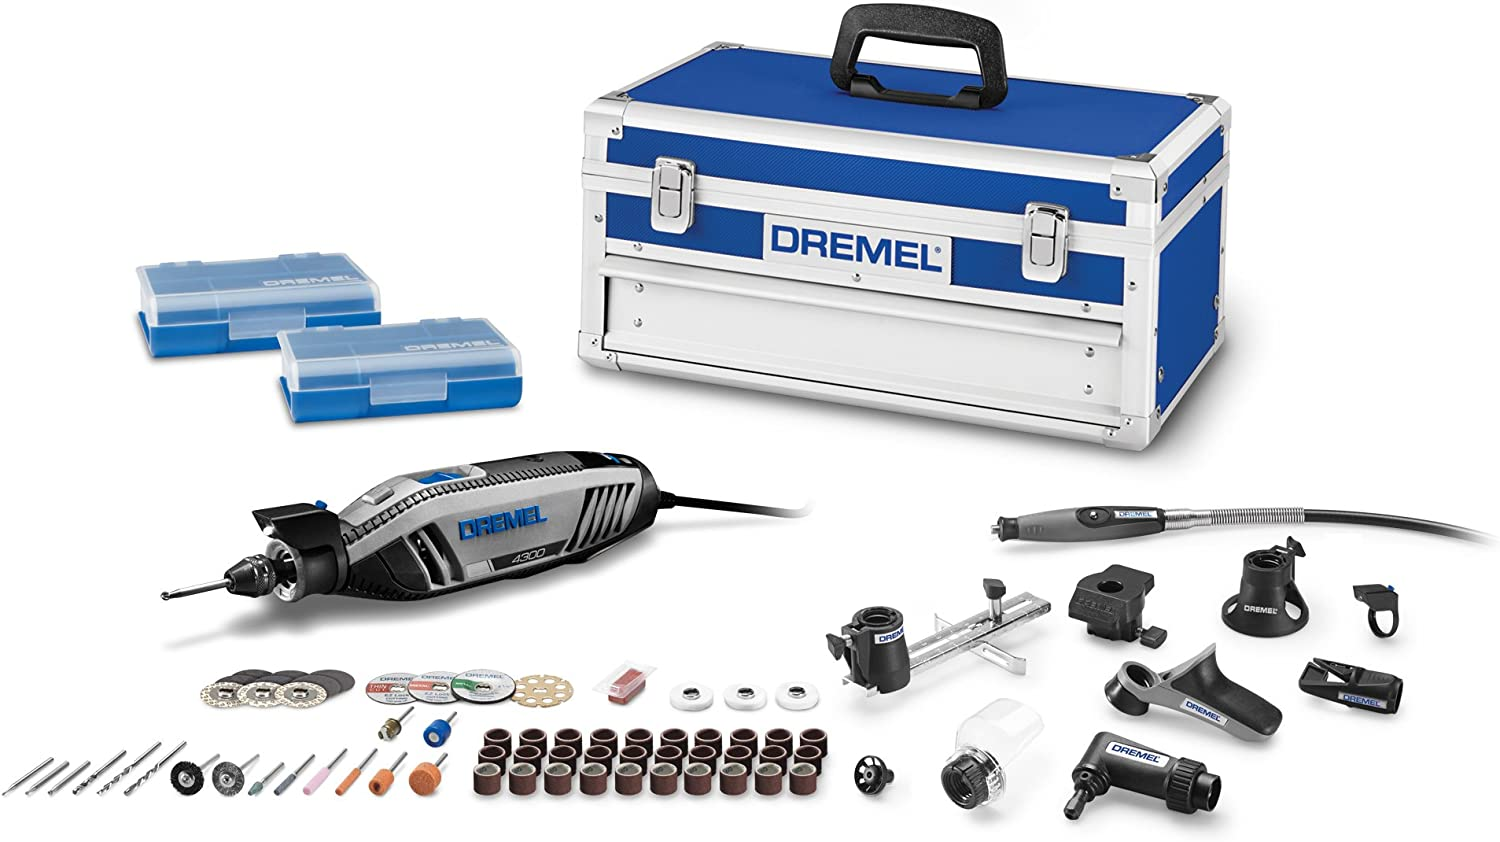 Dremel for wood carving 4300-9/64 Rotary Tool